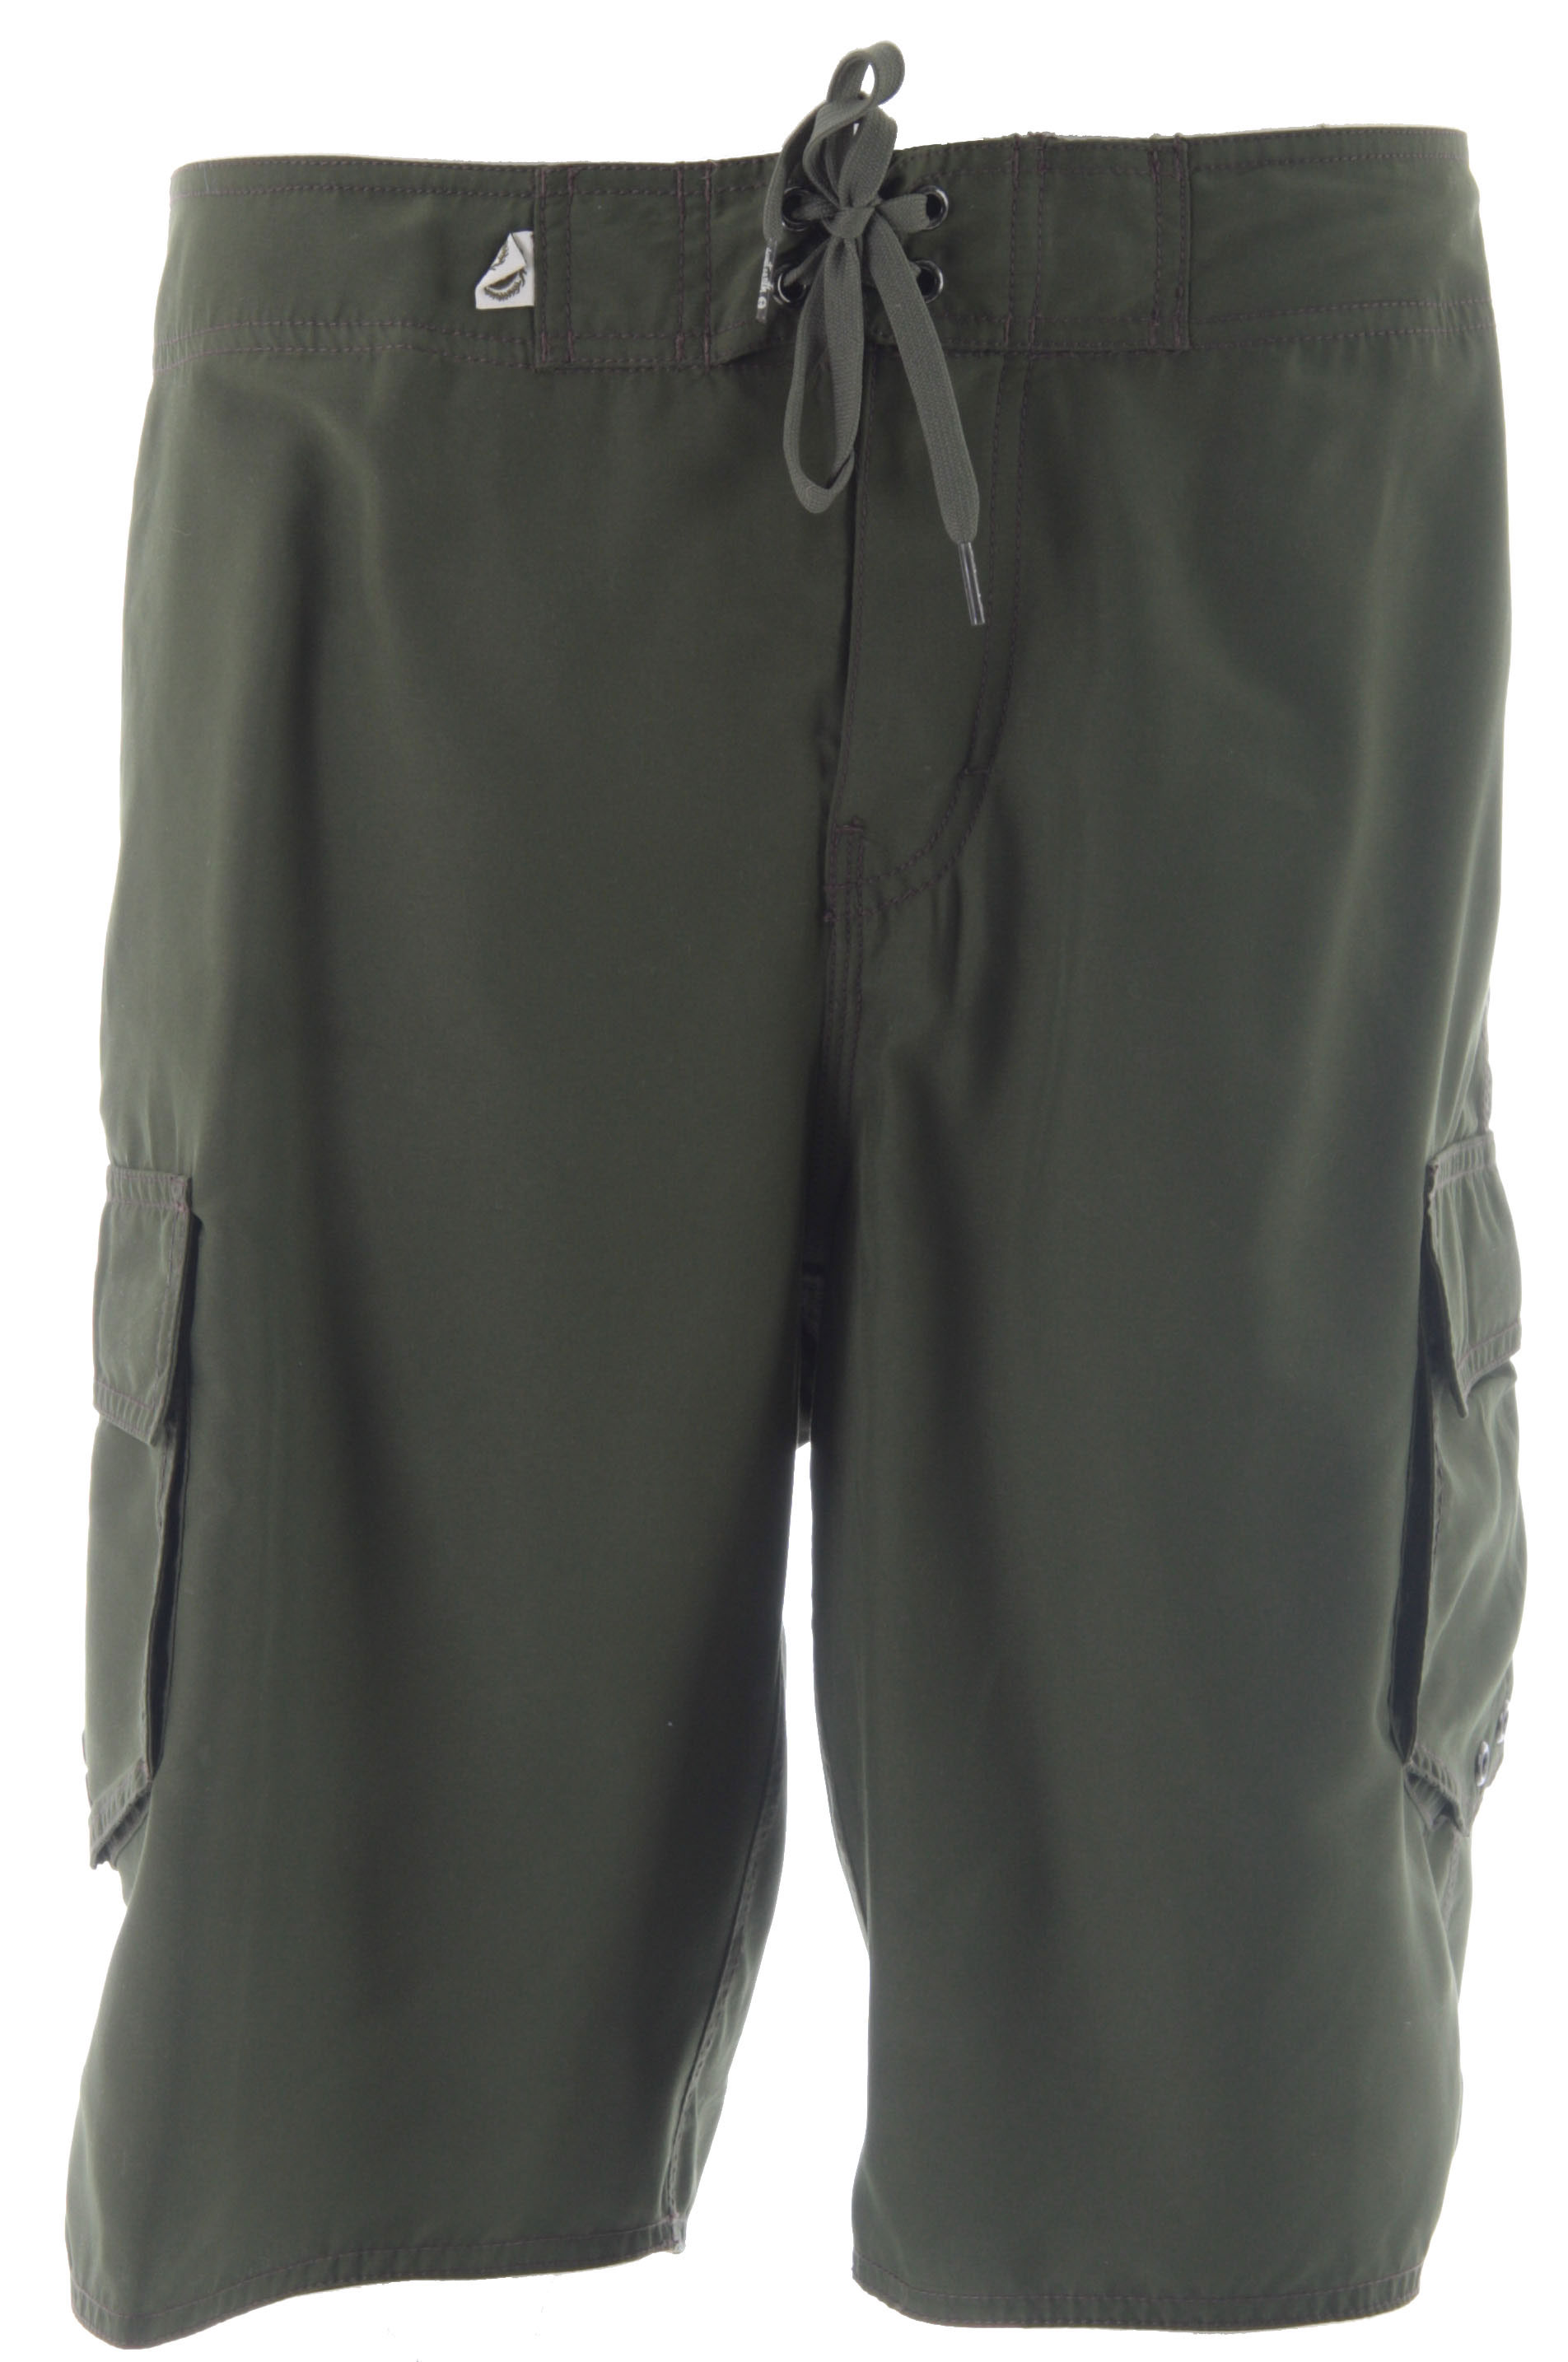 Surf Planet Earth Marshall Boardshorts Dark Chive - $25.88